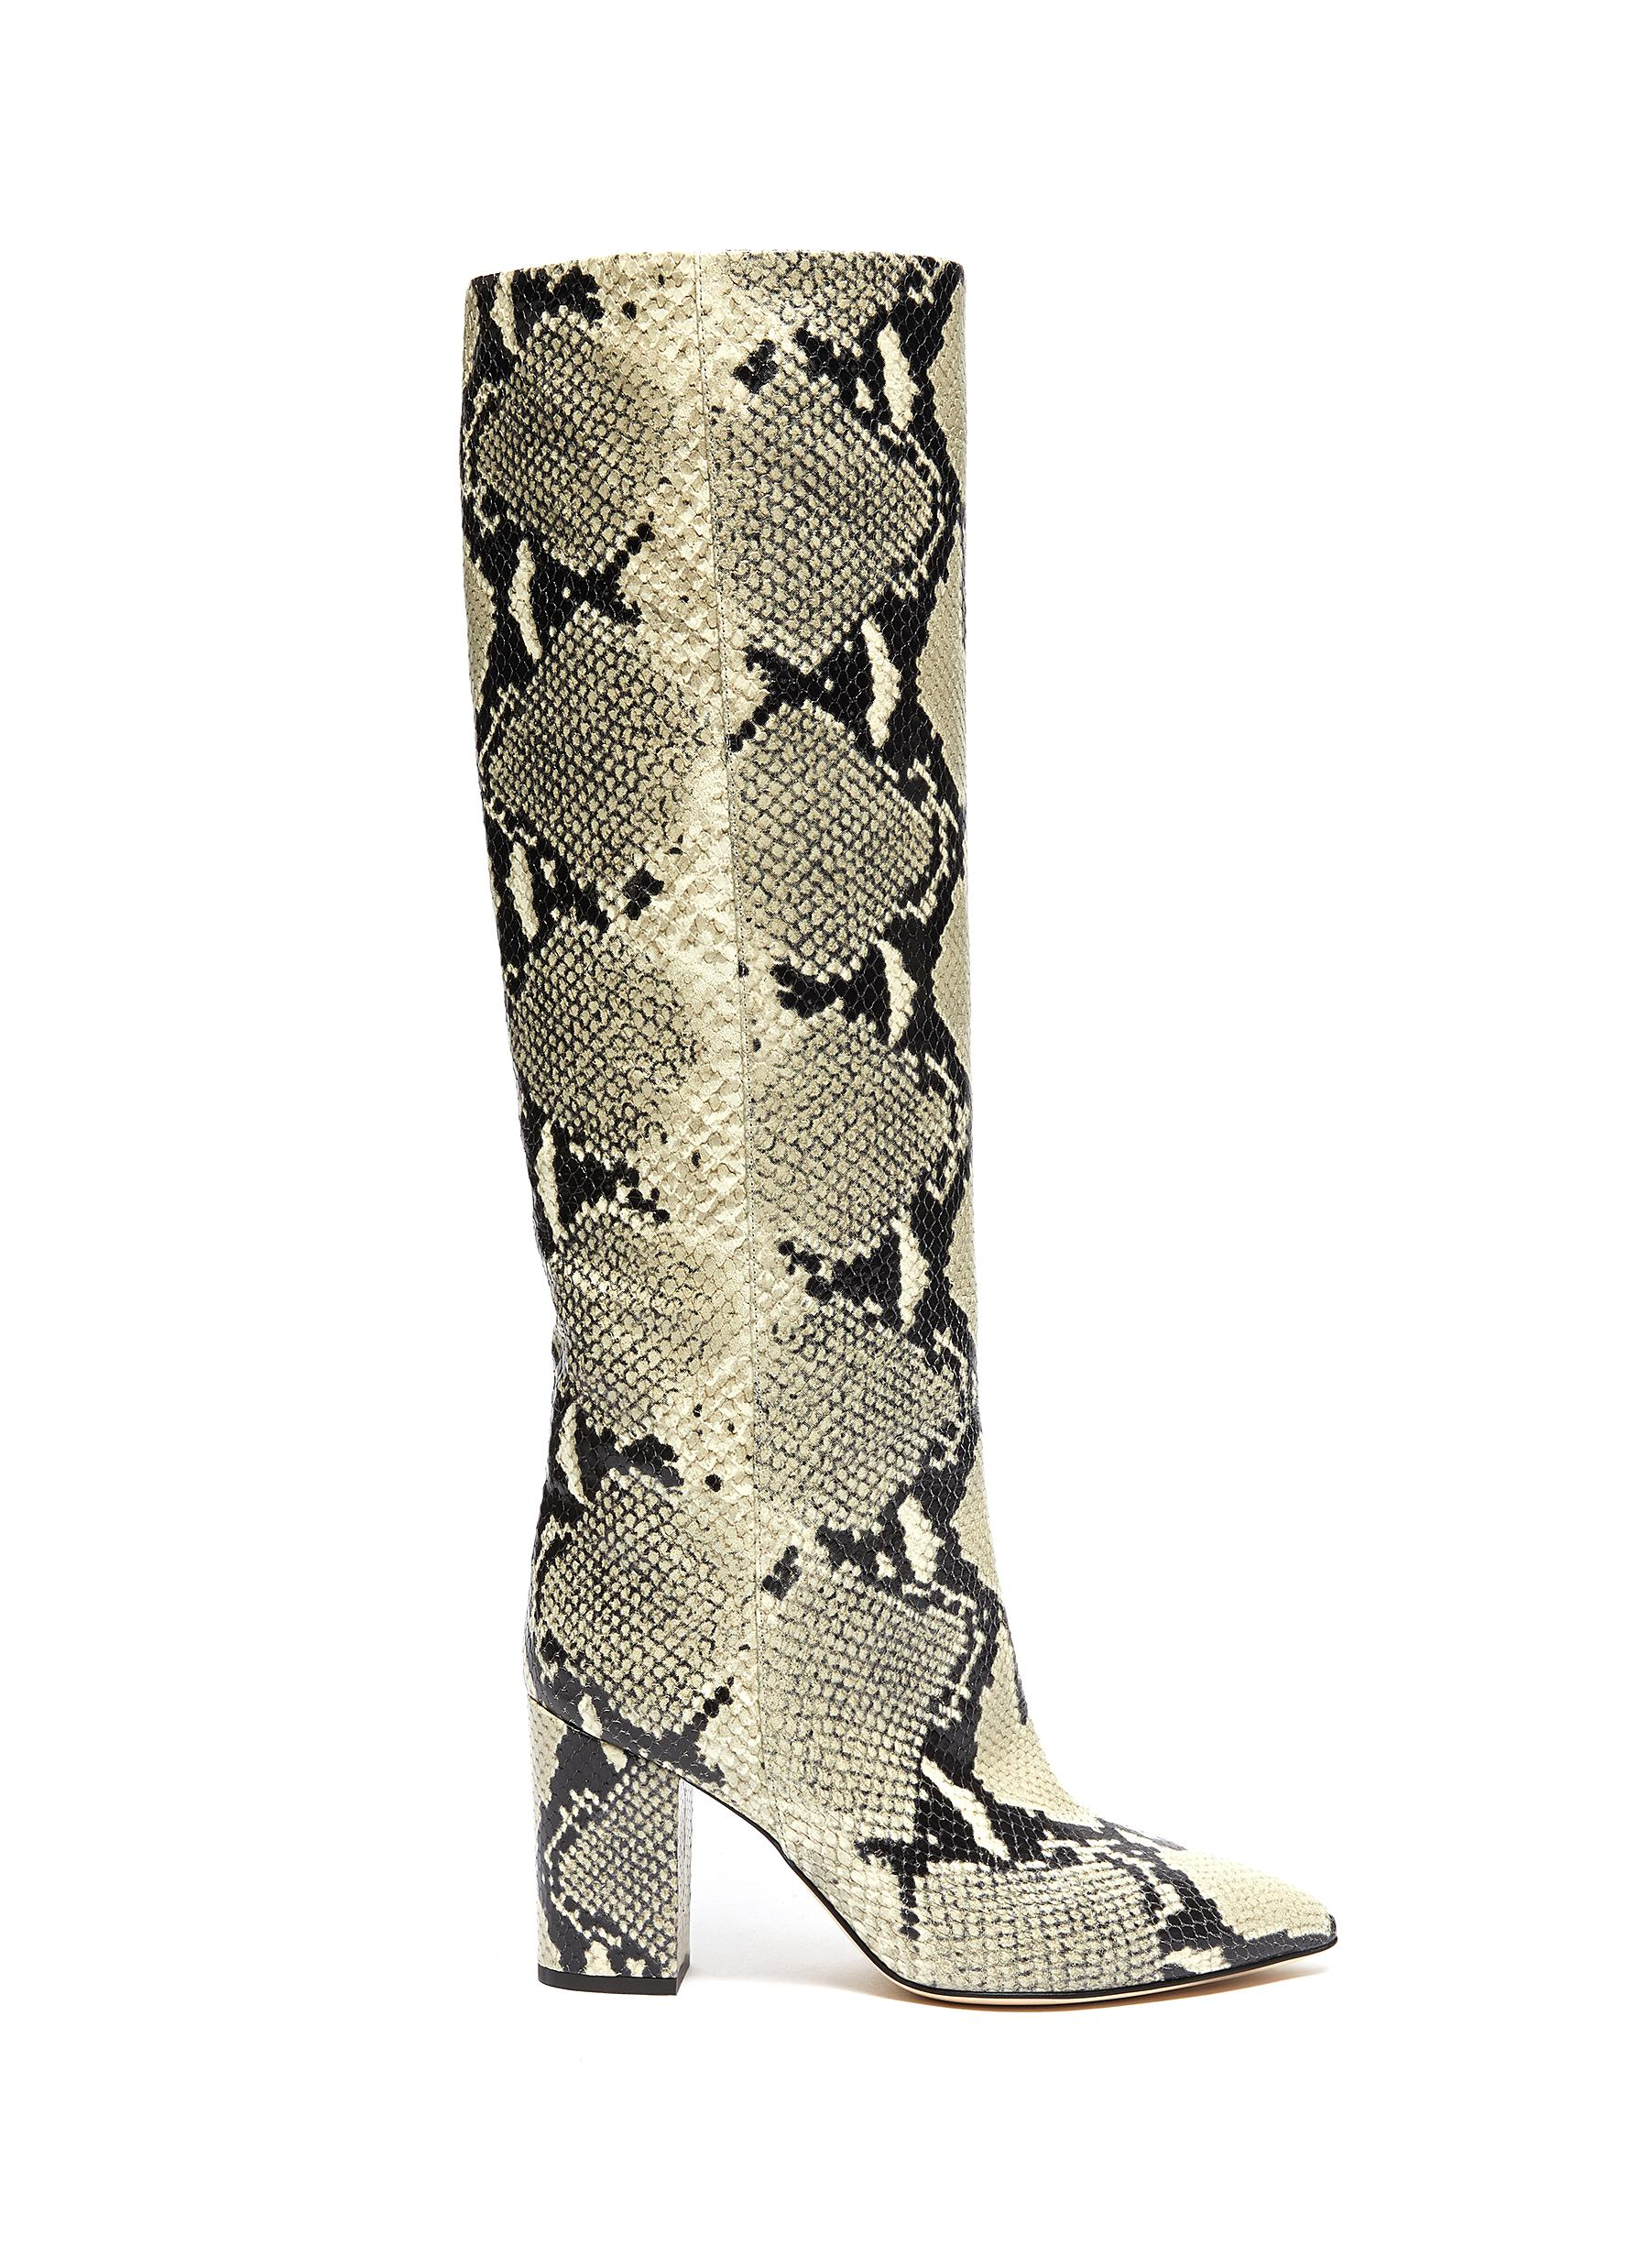 Paris Texas Boots SNAKE EMBOSSED LEATHER KNEE HIGH BOOTS